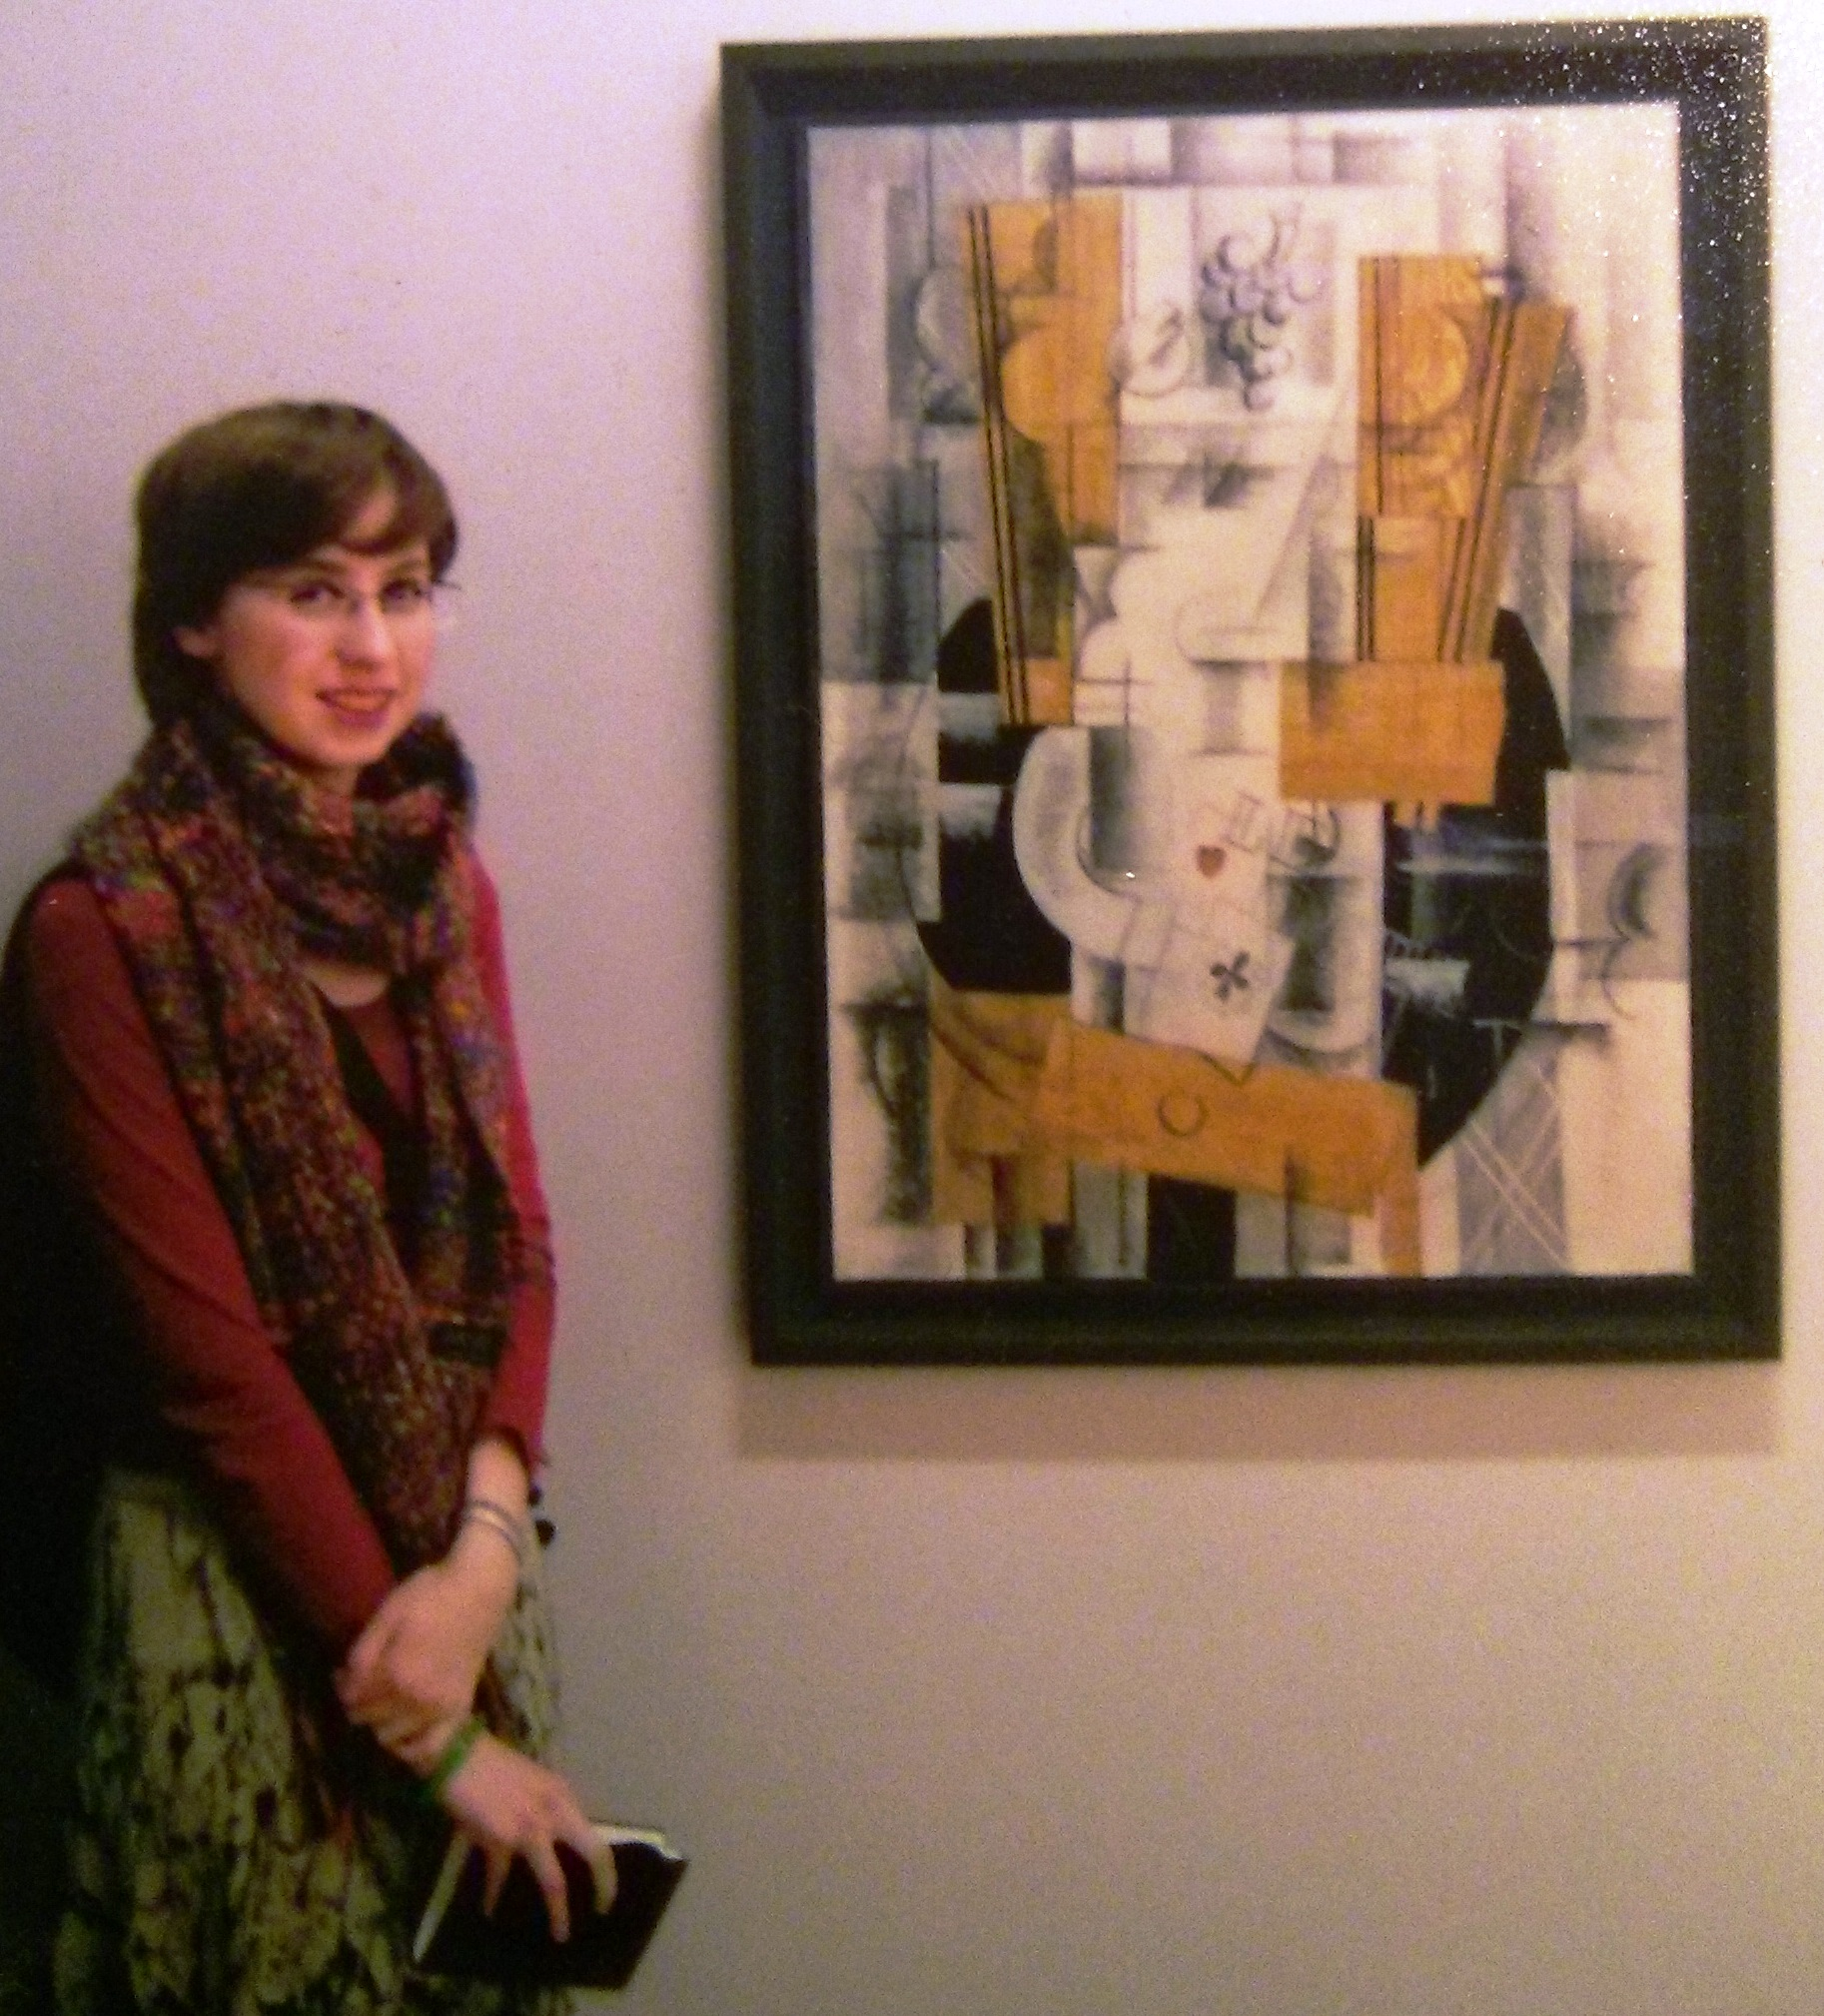 Chloé Wolifson with Georges Braque's Compotier et cartes, 1913, oil pencil and charcoal on canvas, 81 x 60 cm, at Centre Pompidou, Paris, December 2007.